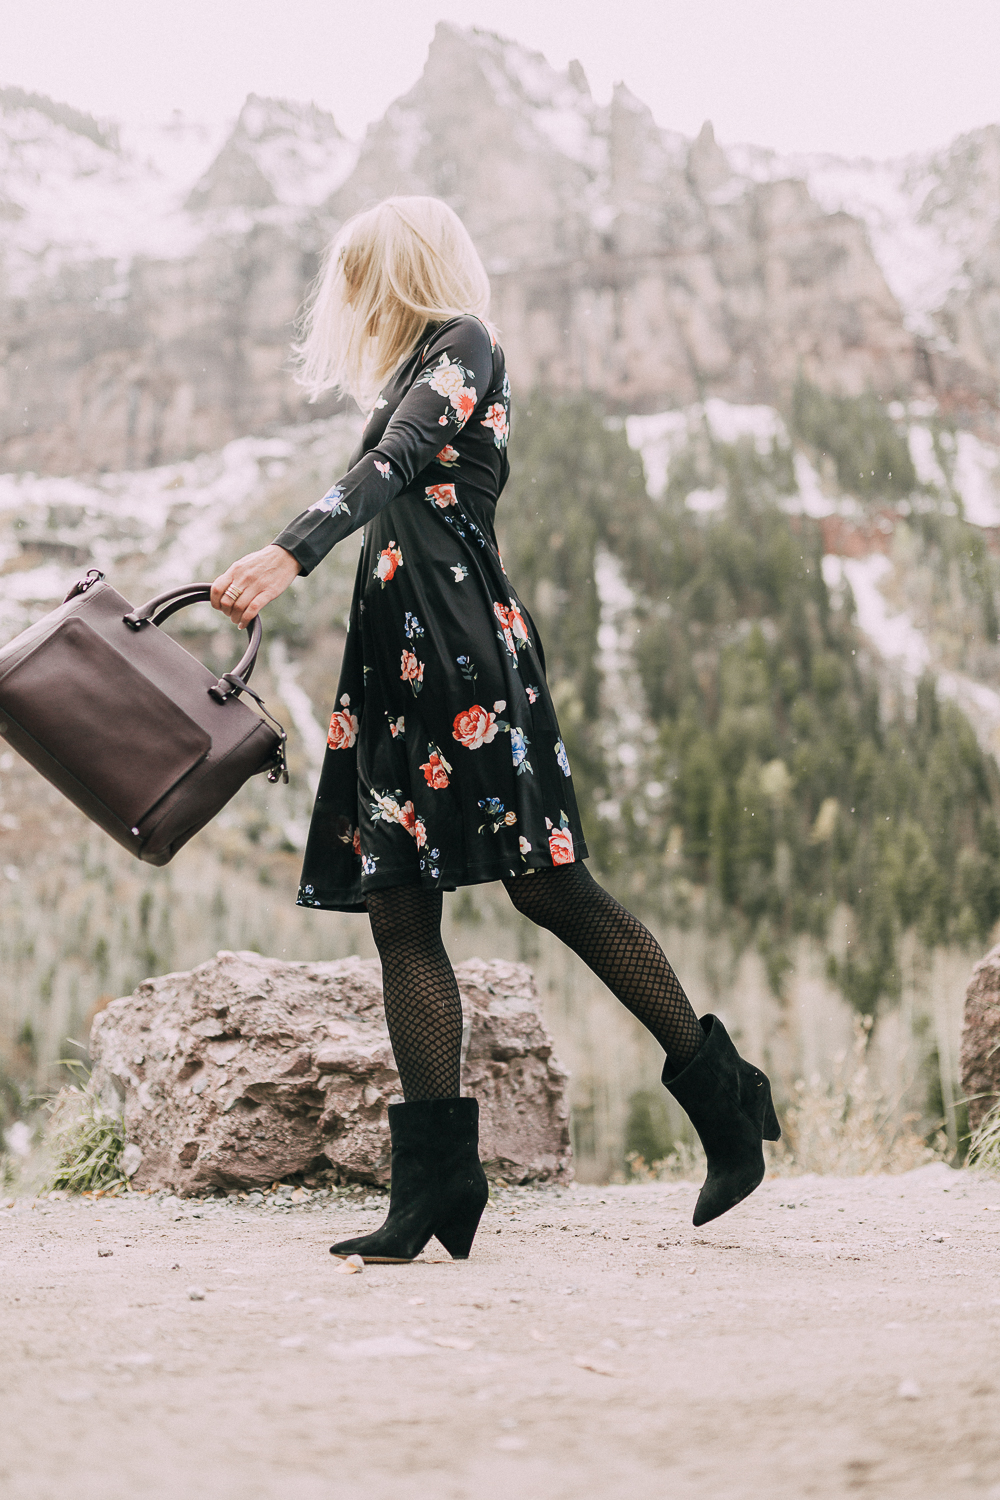 black regina Suede Booties by Vince Camuto paired with black floral print dress and leather burgundy tote bag on blonde woman in rocky mountains